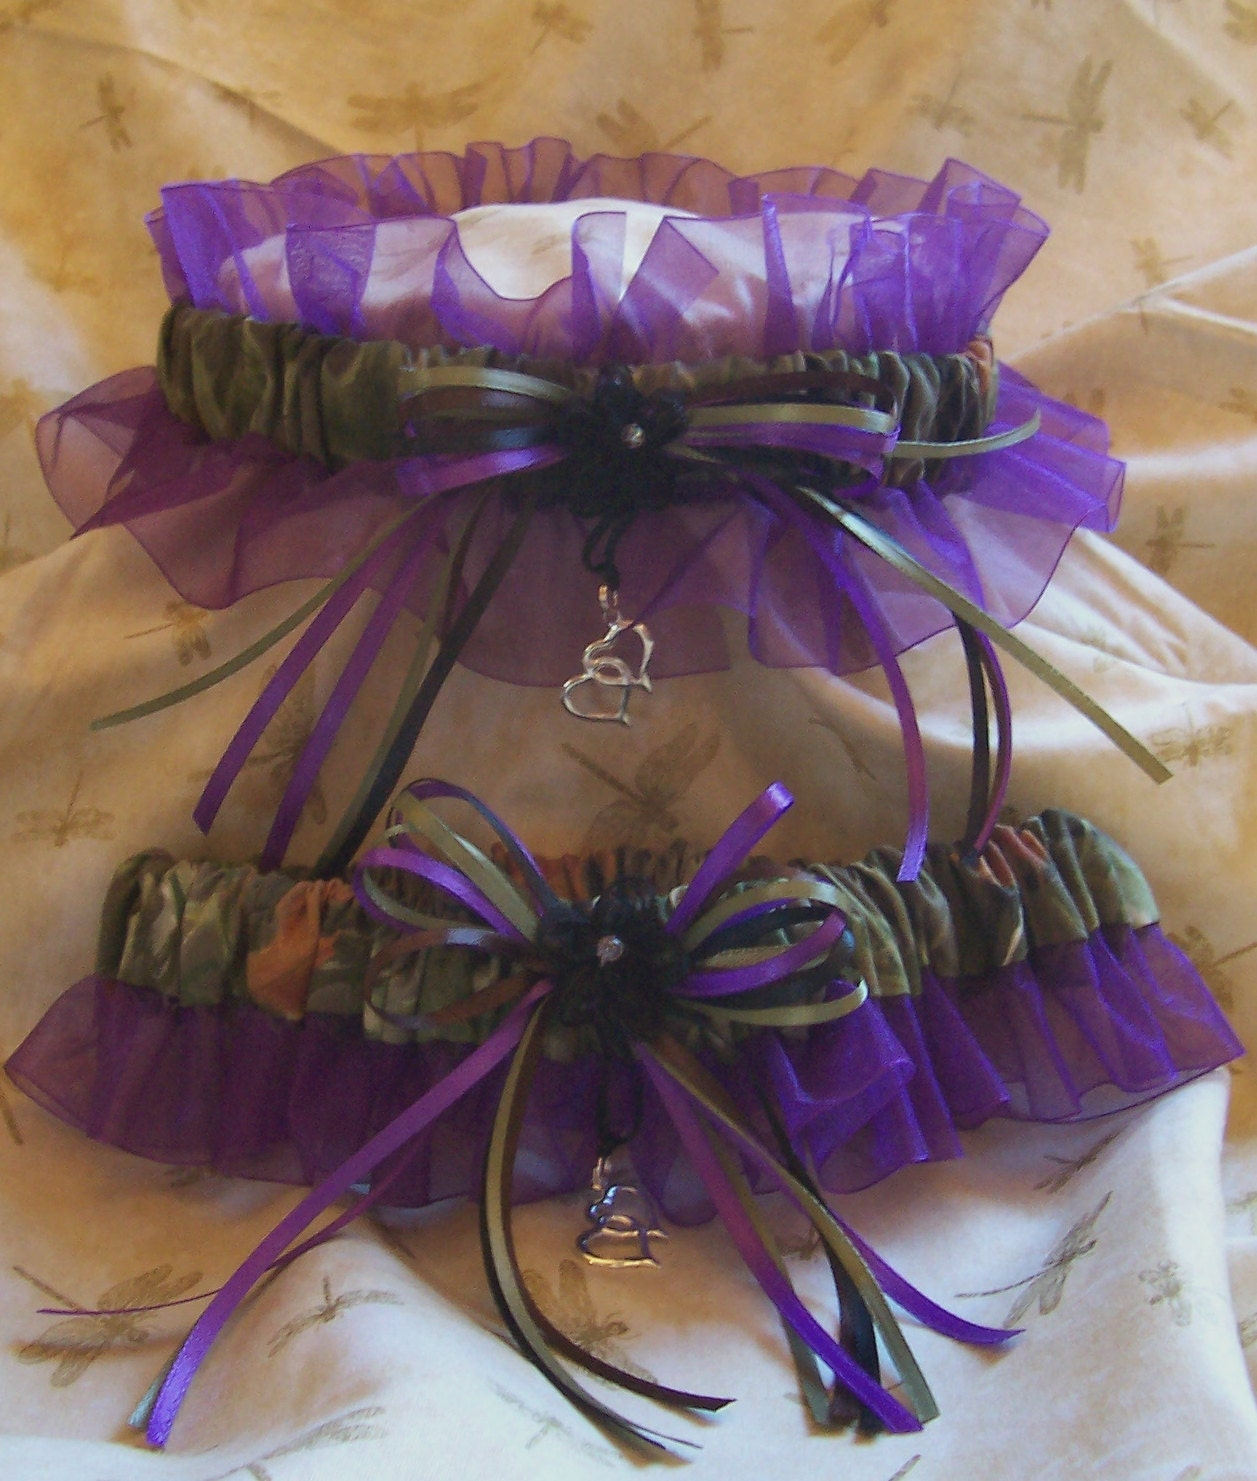 Realtree Camo And Purple Wedding Garter Set By Kits257 On Etsy